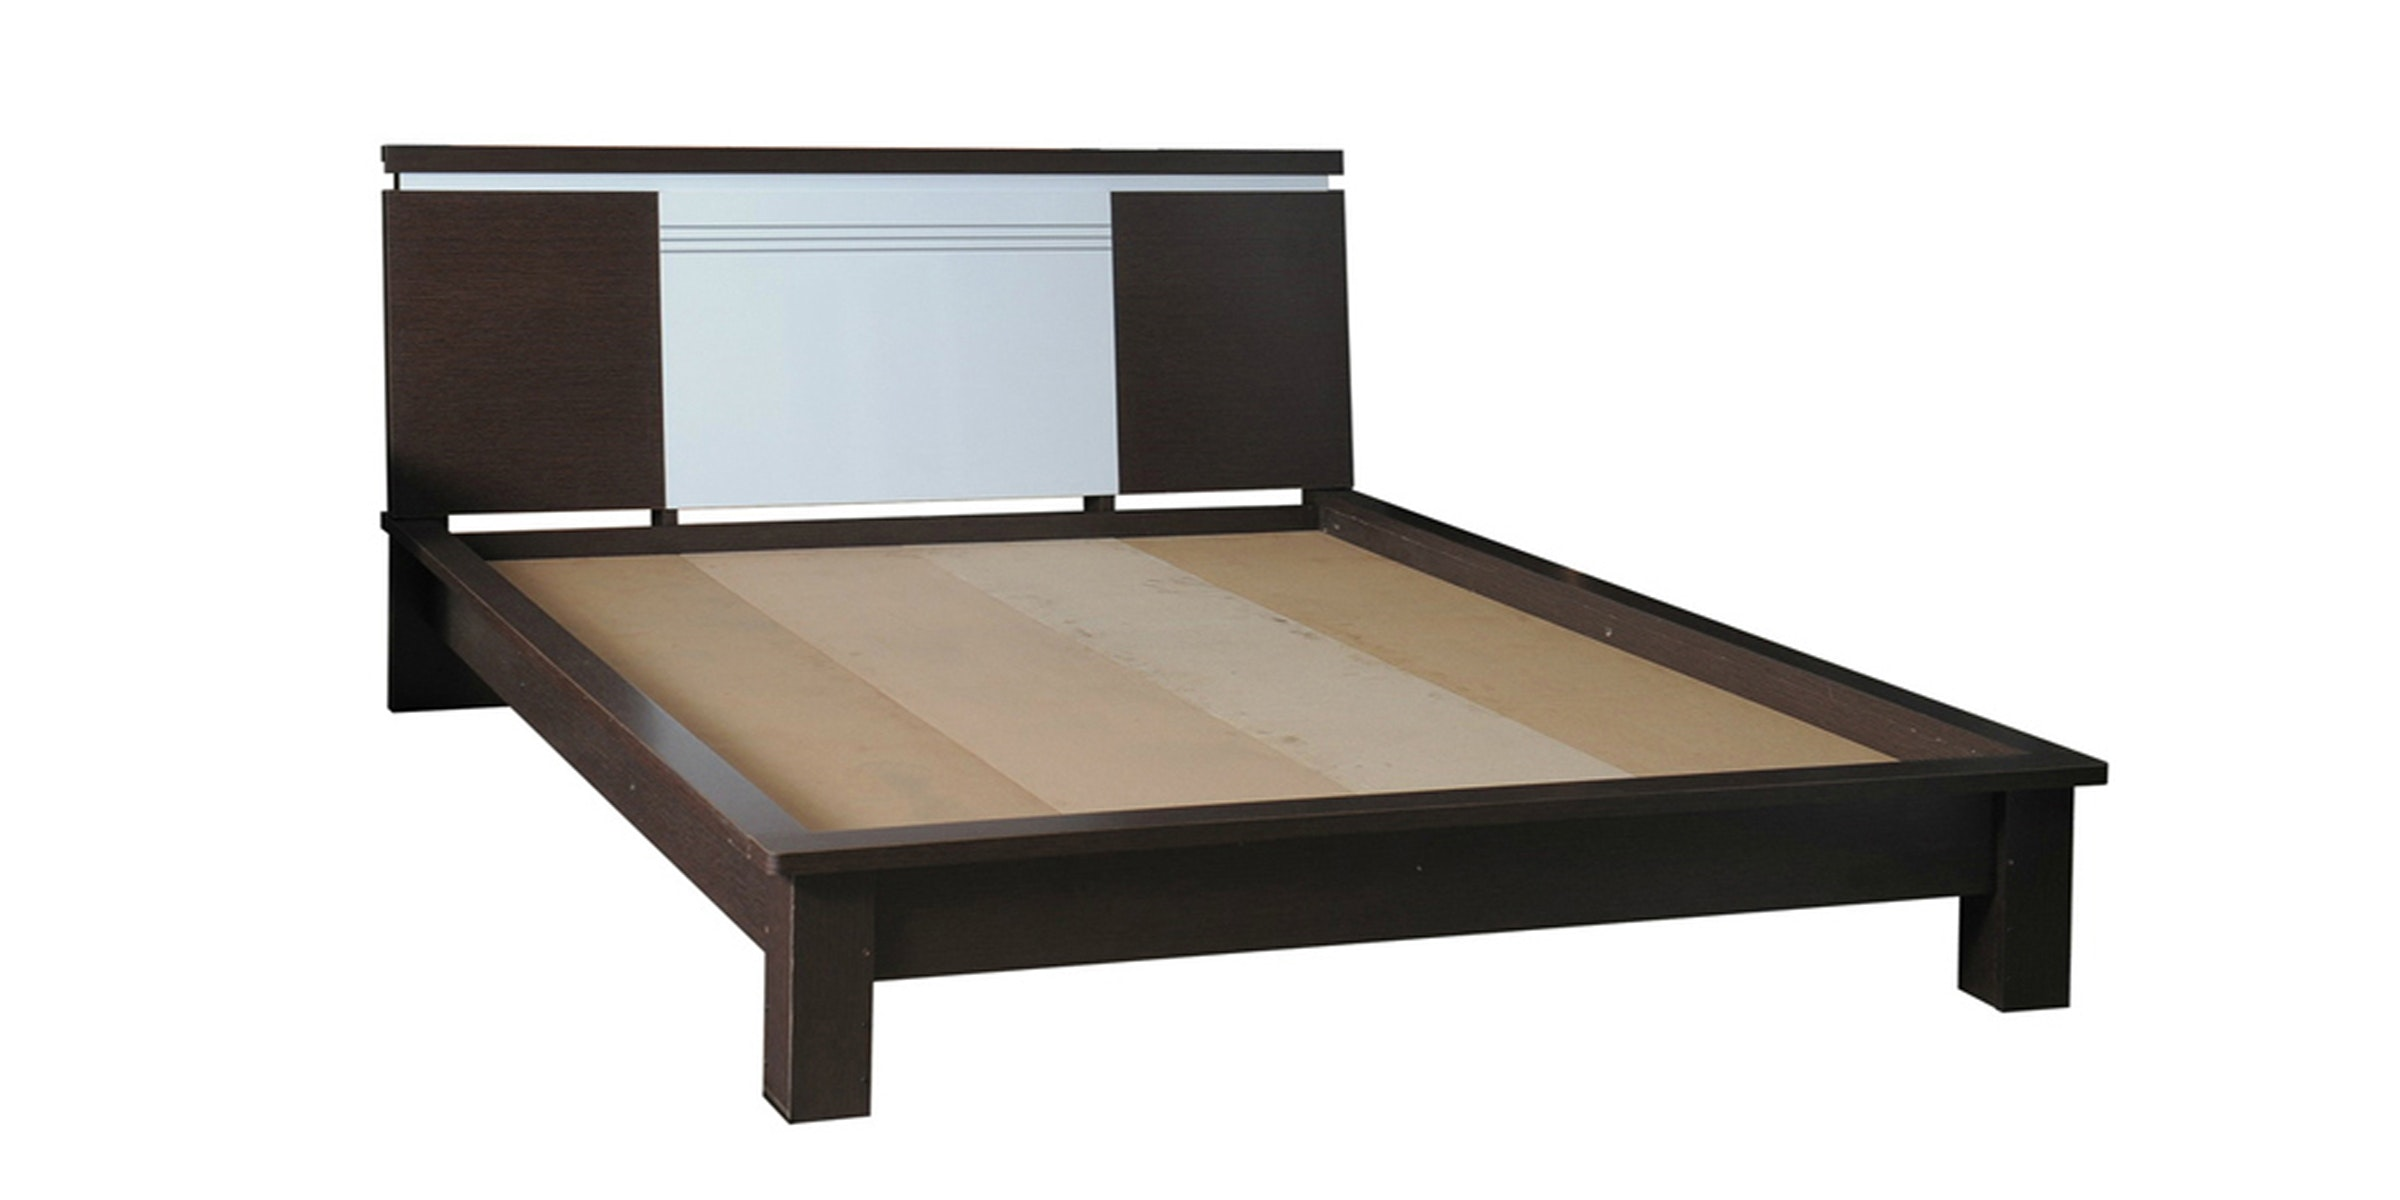 Graver Anata Ranjang Double Bed (Queen Size)